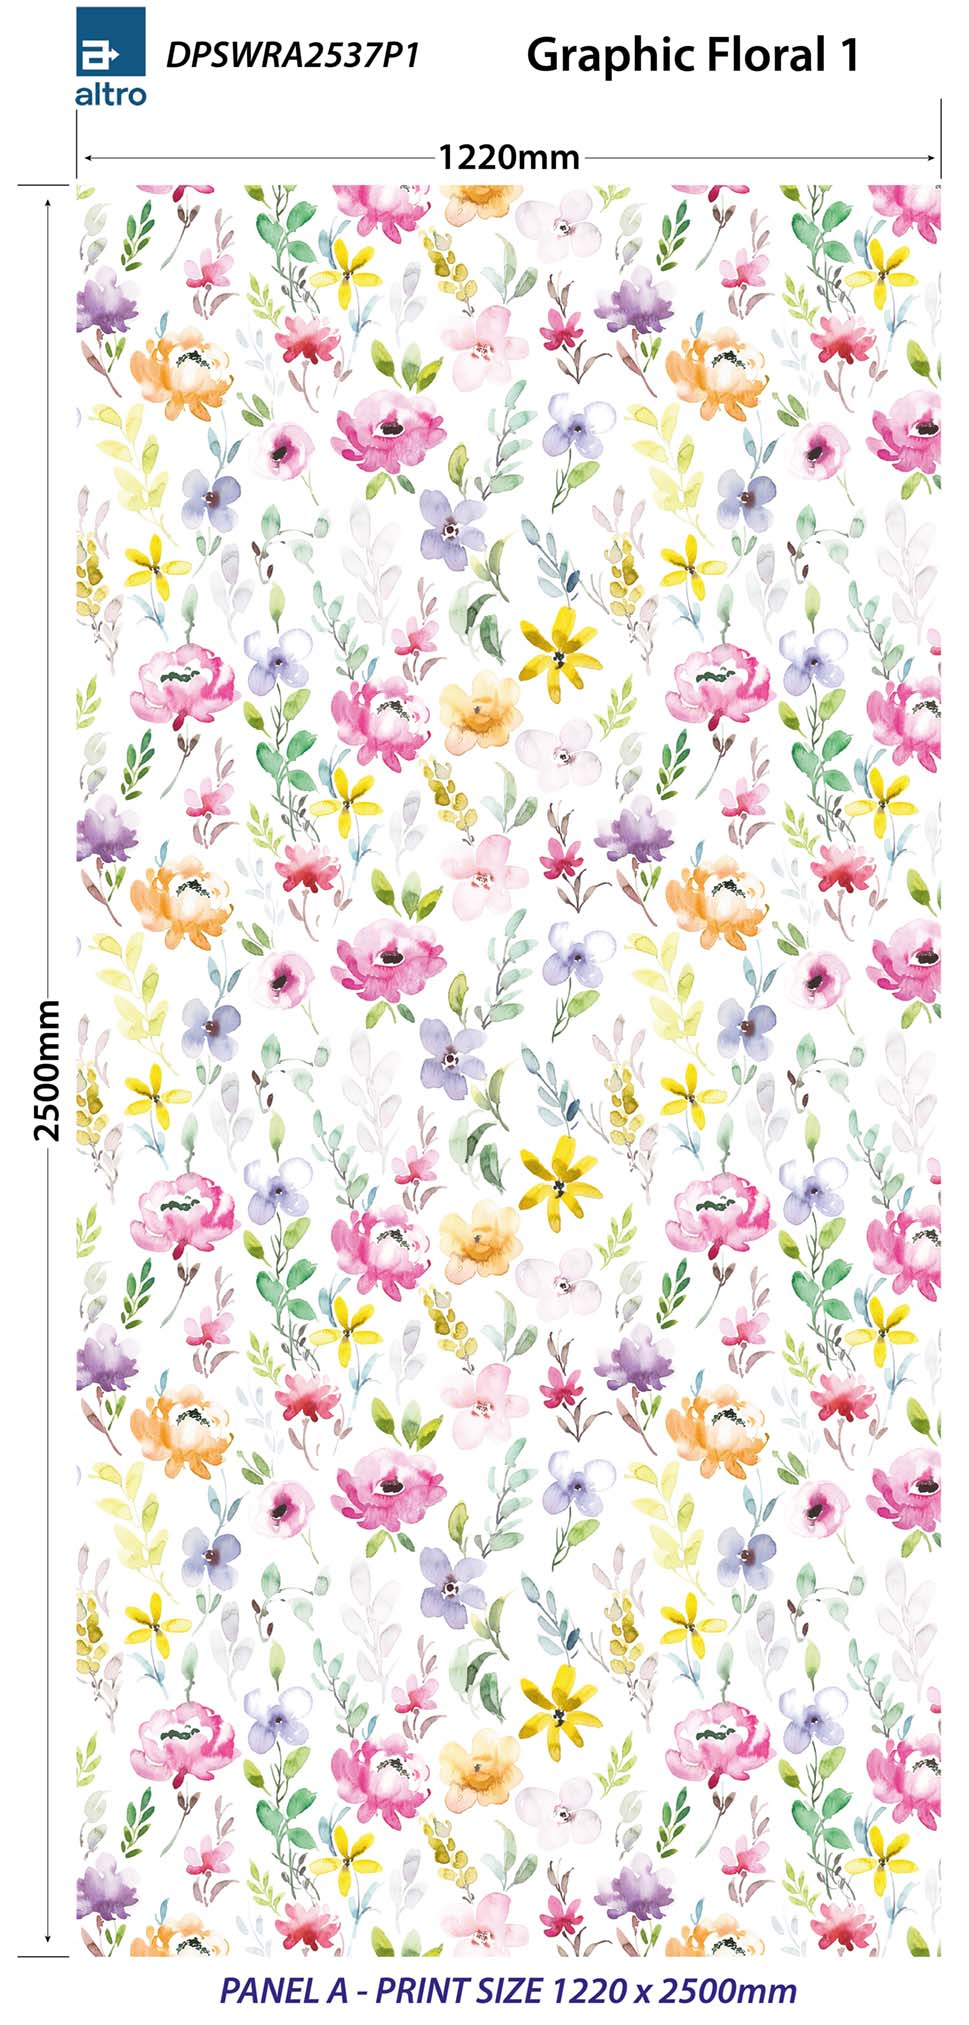 Altro Whiterock Digiclad Kit Graphic Floral 1 - Altrodirect